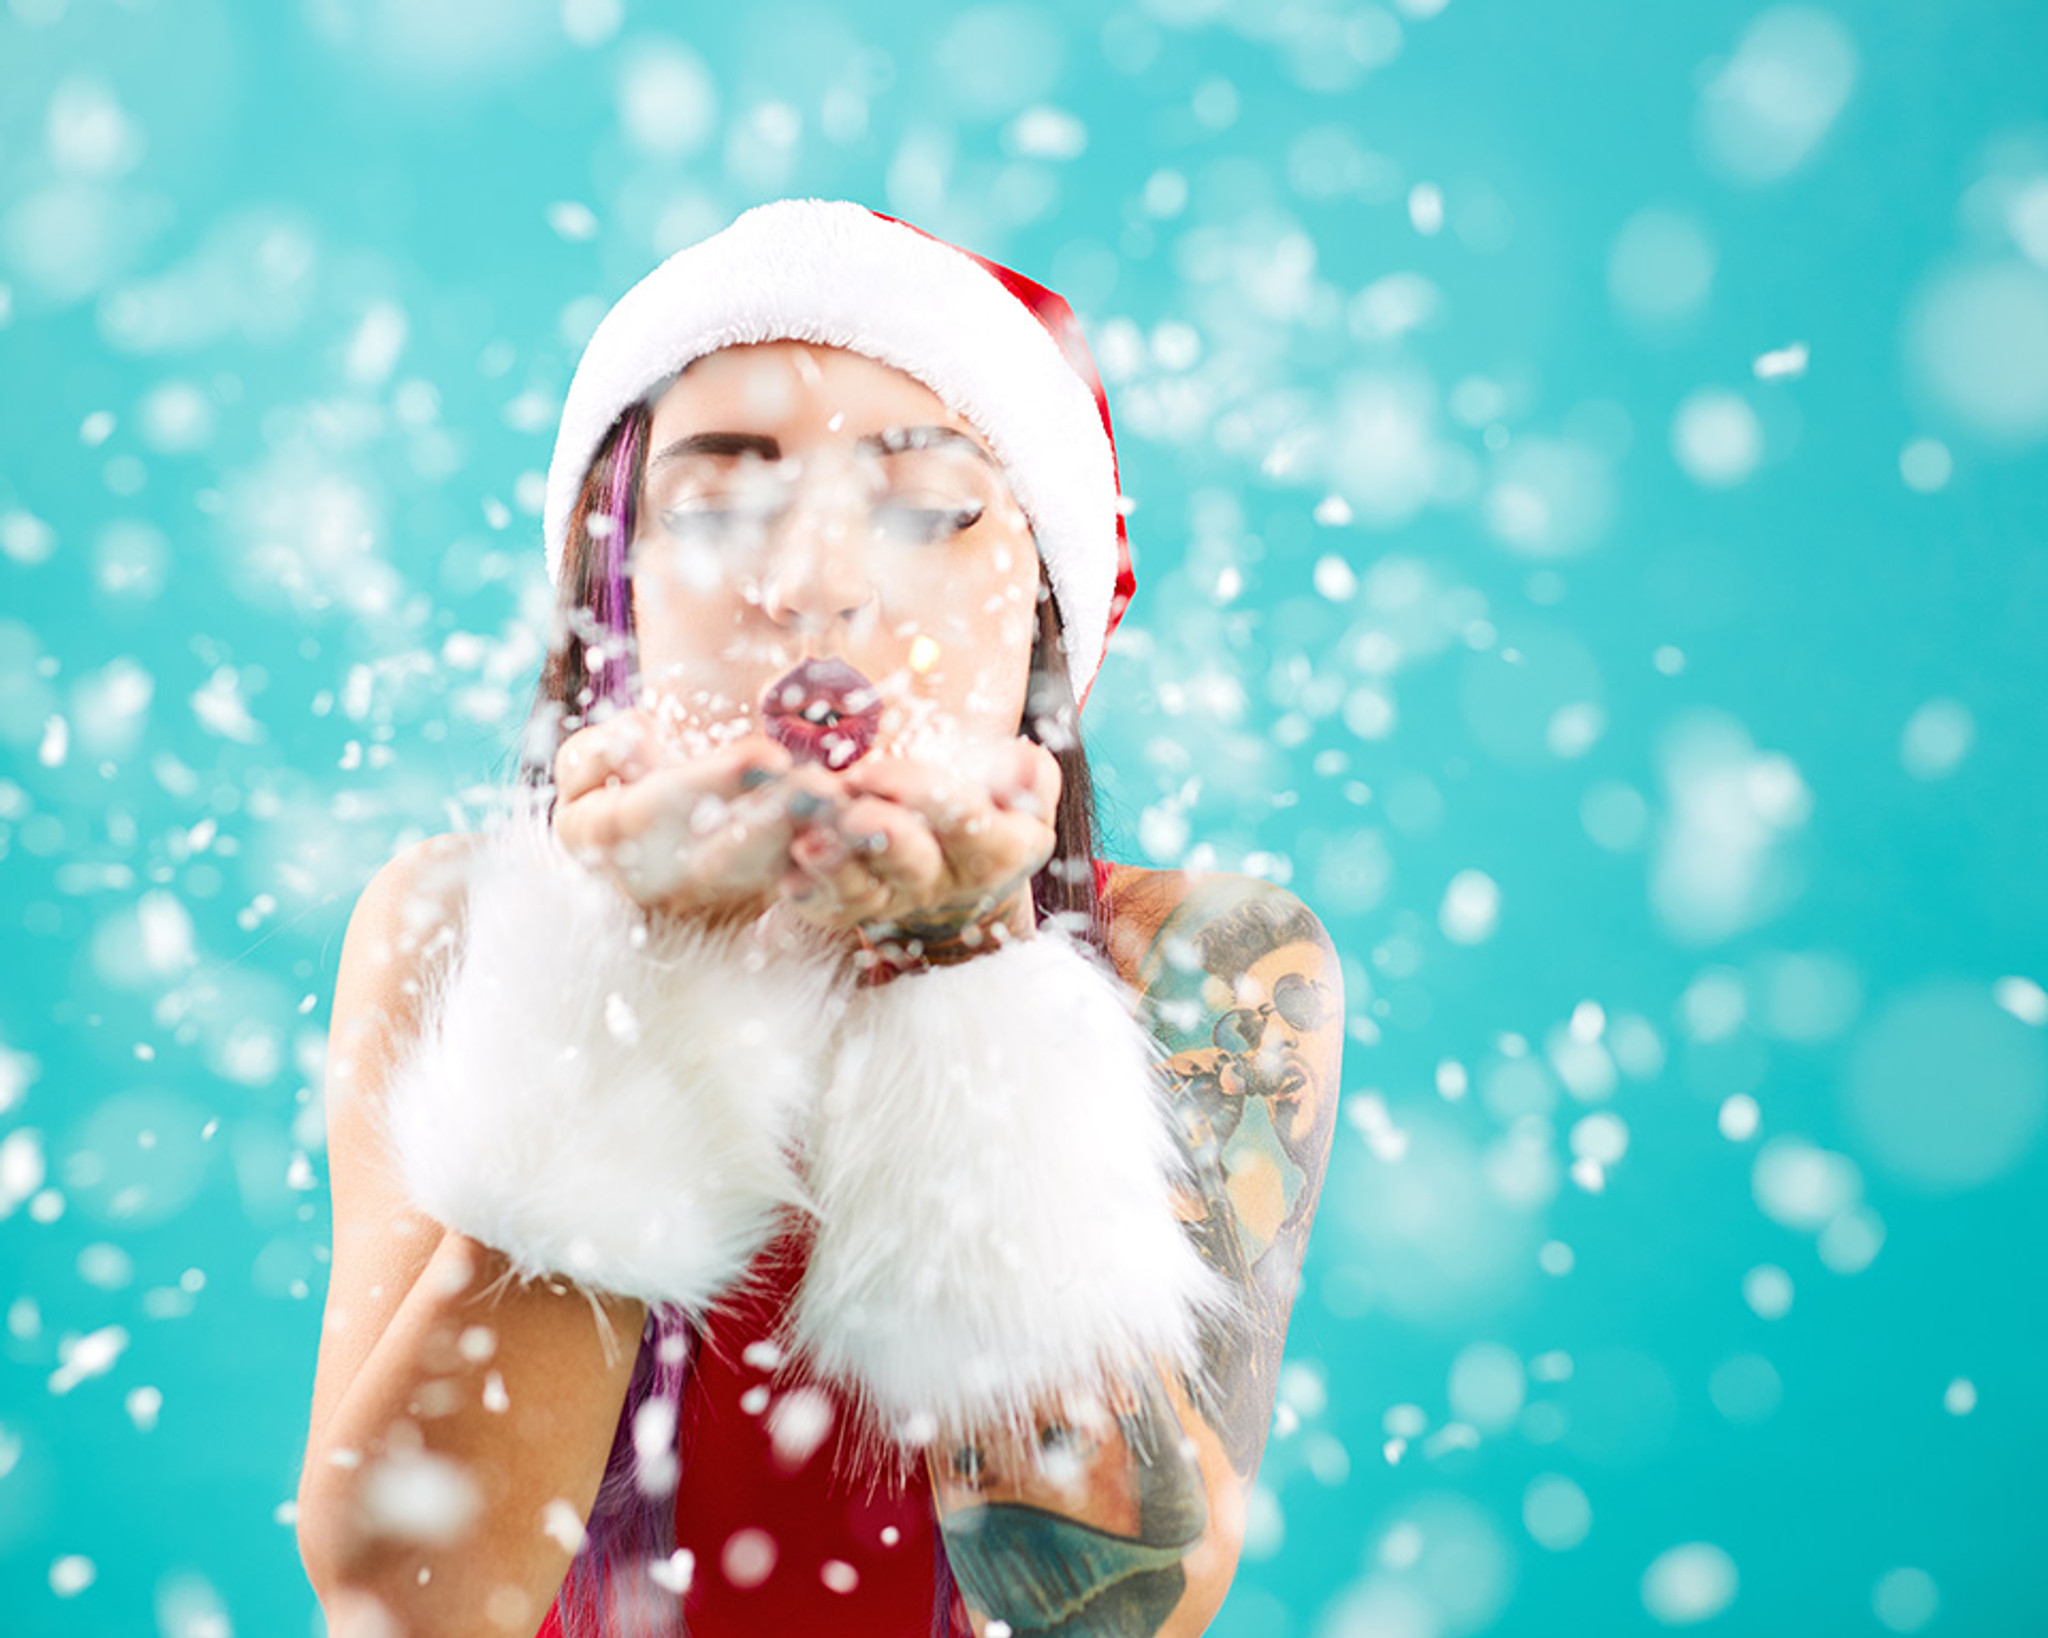 11 Sexy Stocking Stuffers to Please Your Lover This Holiday Season